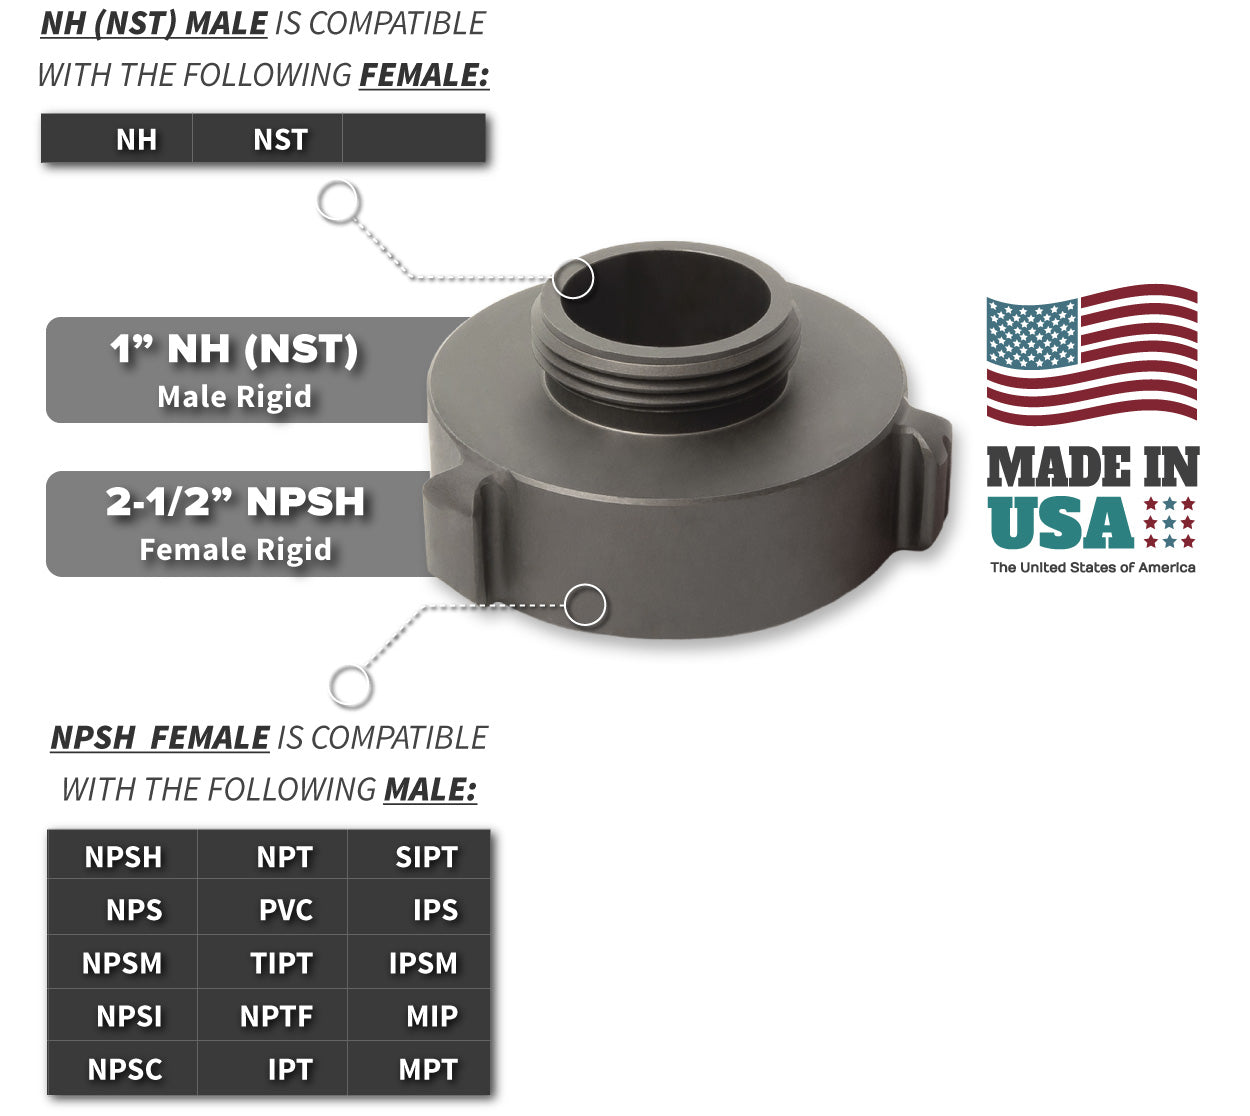 2.5 Inch NPSH Female x 1 Inch NH-NST Male Compatibility Thread Chart